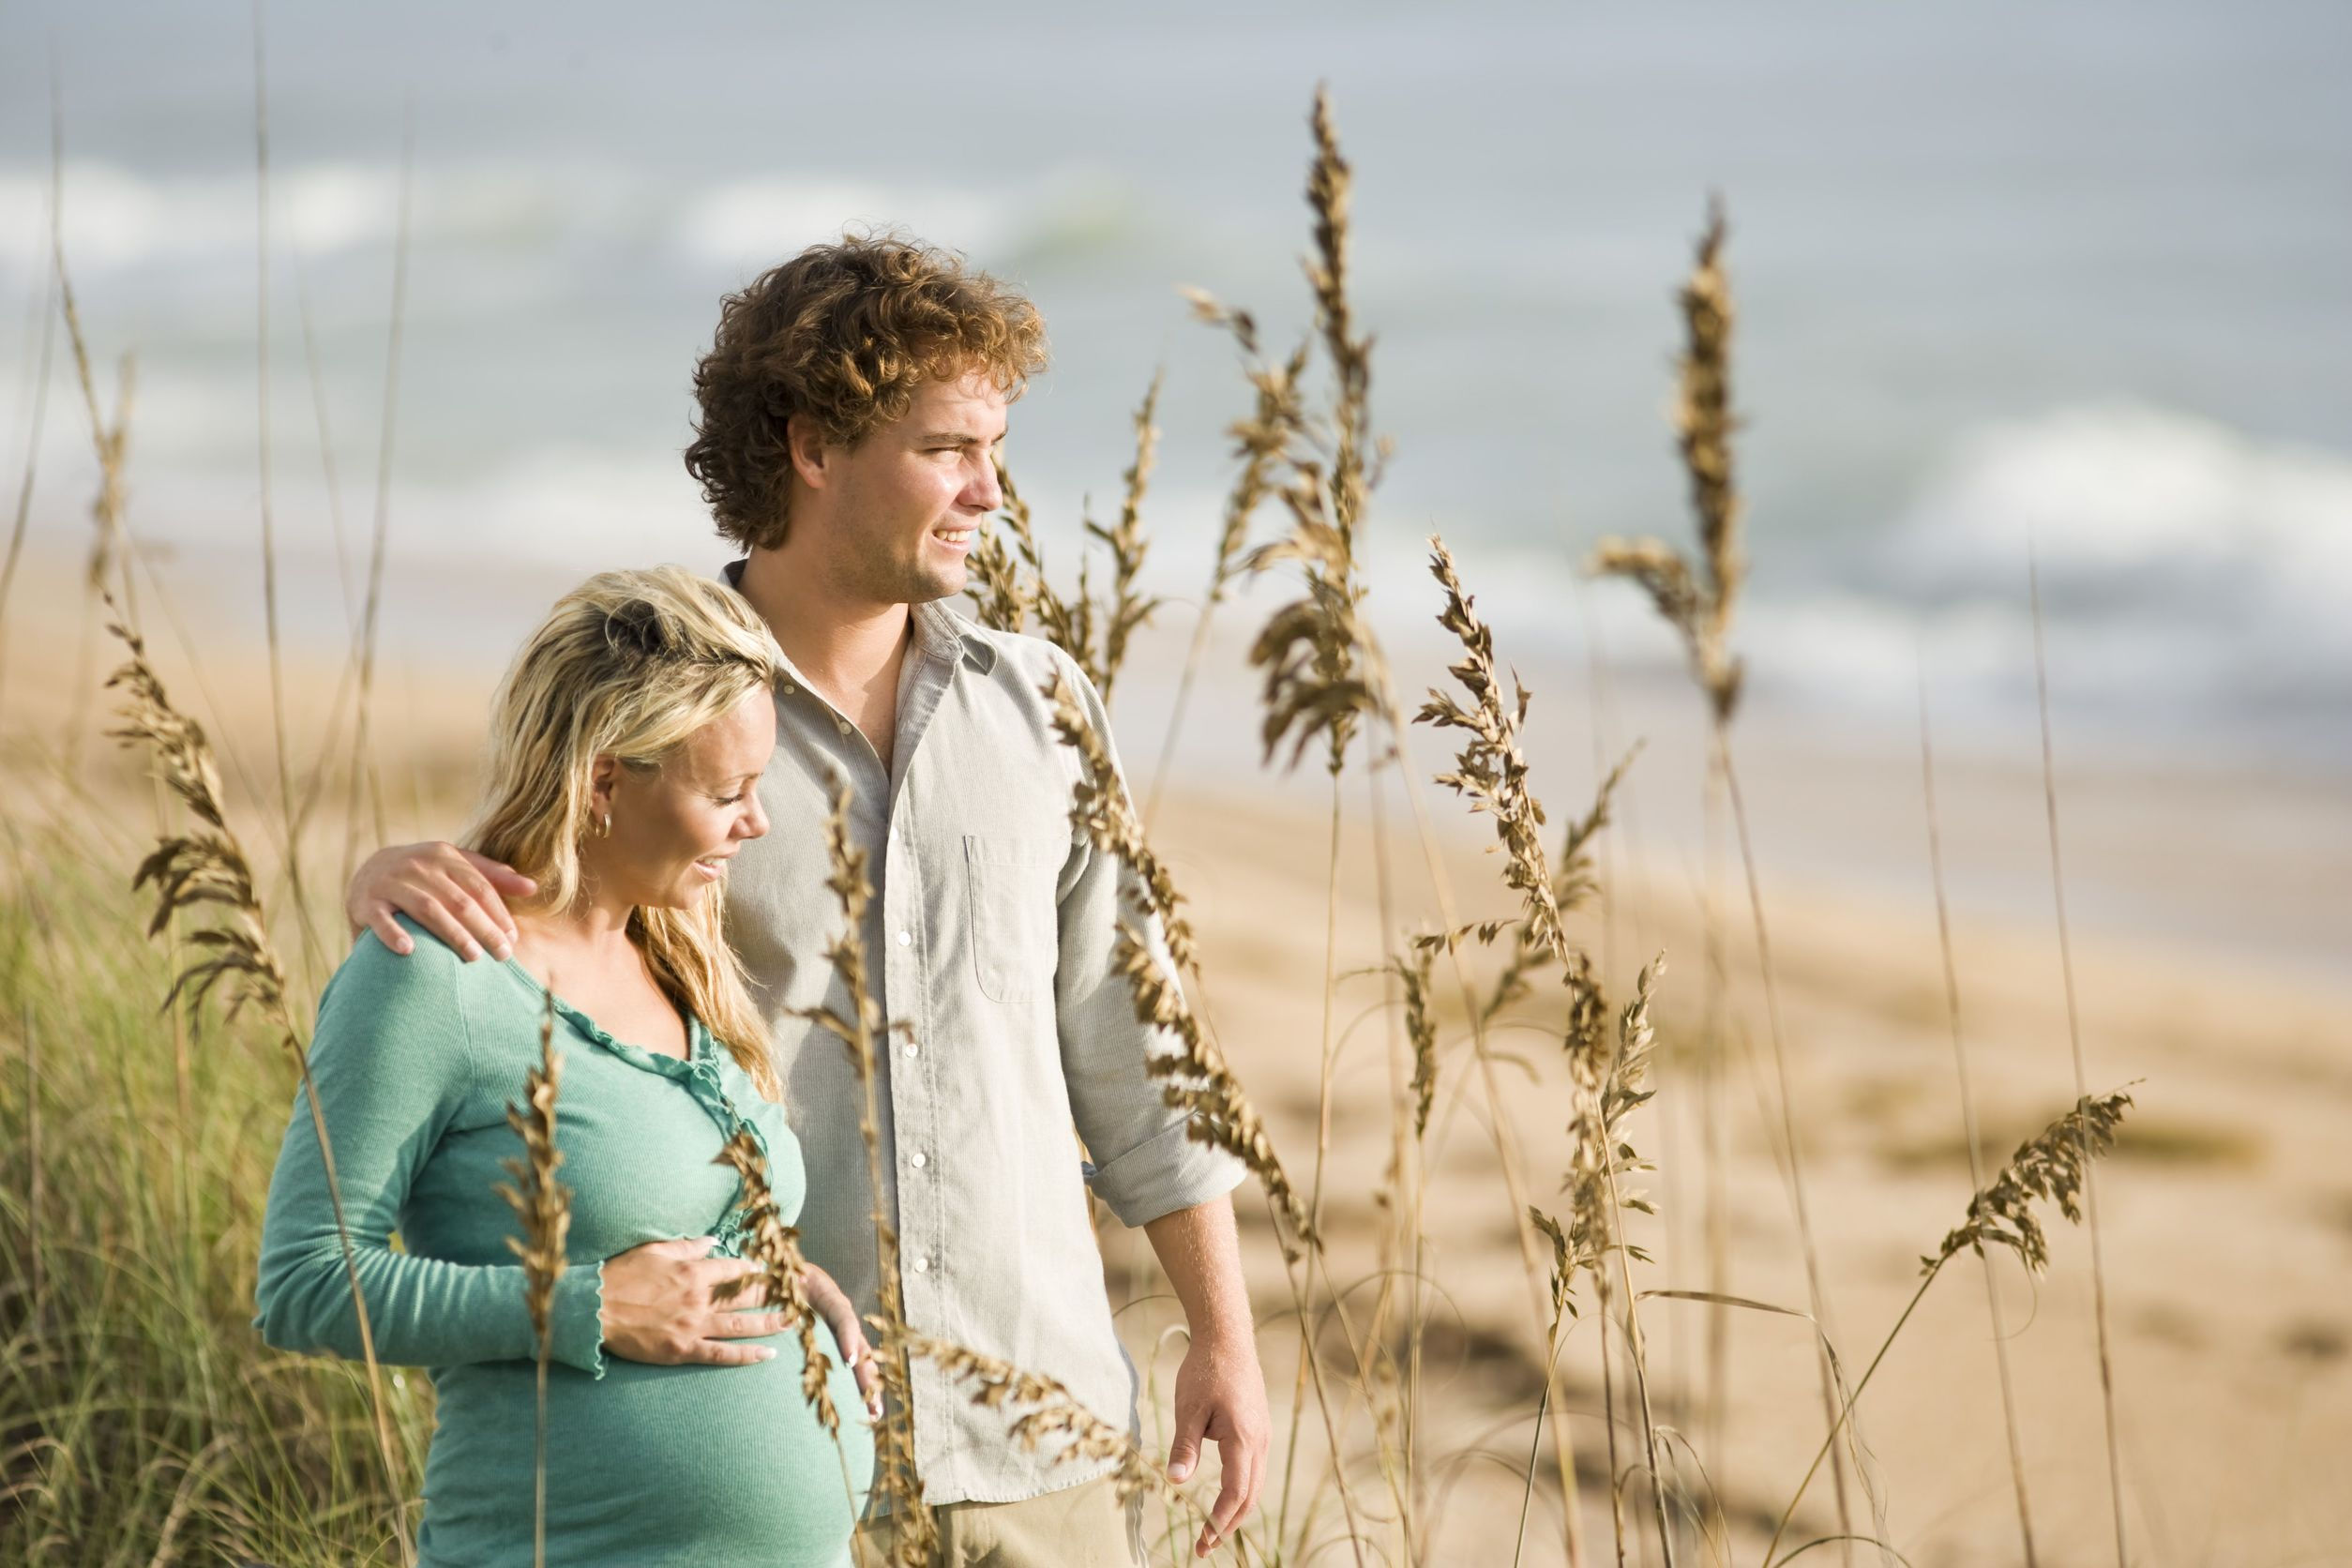 6683601 - happy young pregnant woman at beach with husband